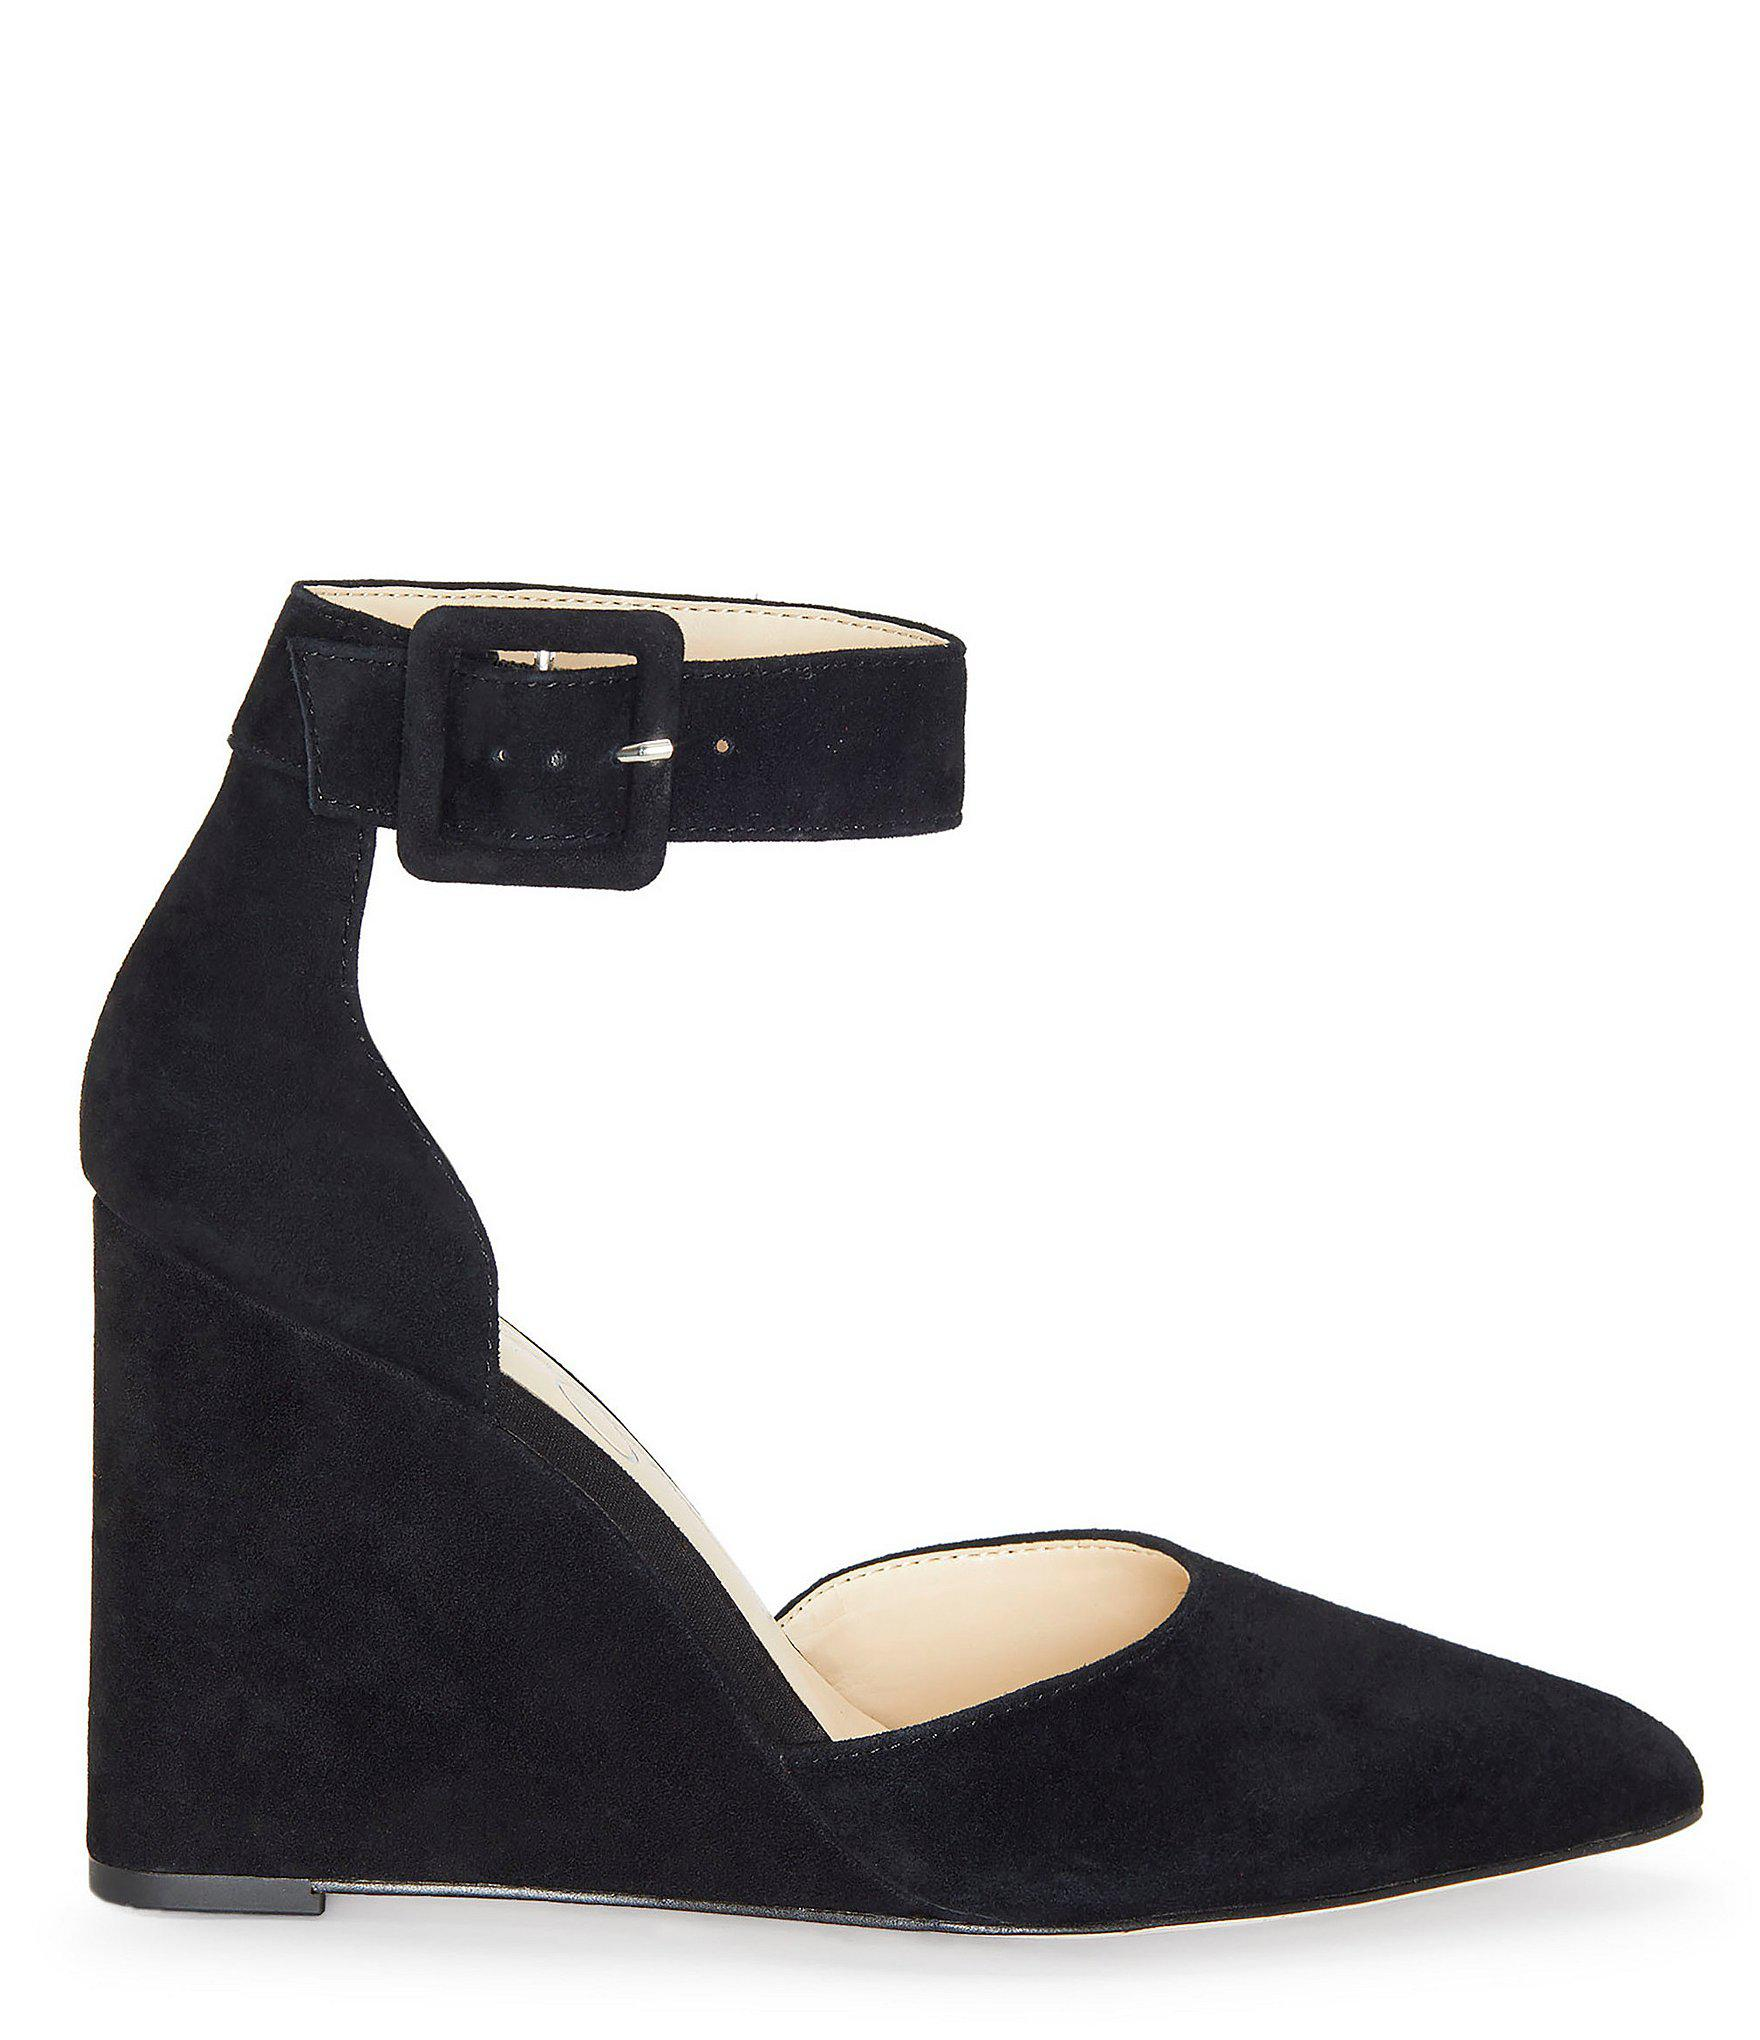 1b881bbeafd7 Jessica Simpson - Black Moyra Suede Ankle-strap Wedges - Lyst. View  fullscreen